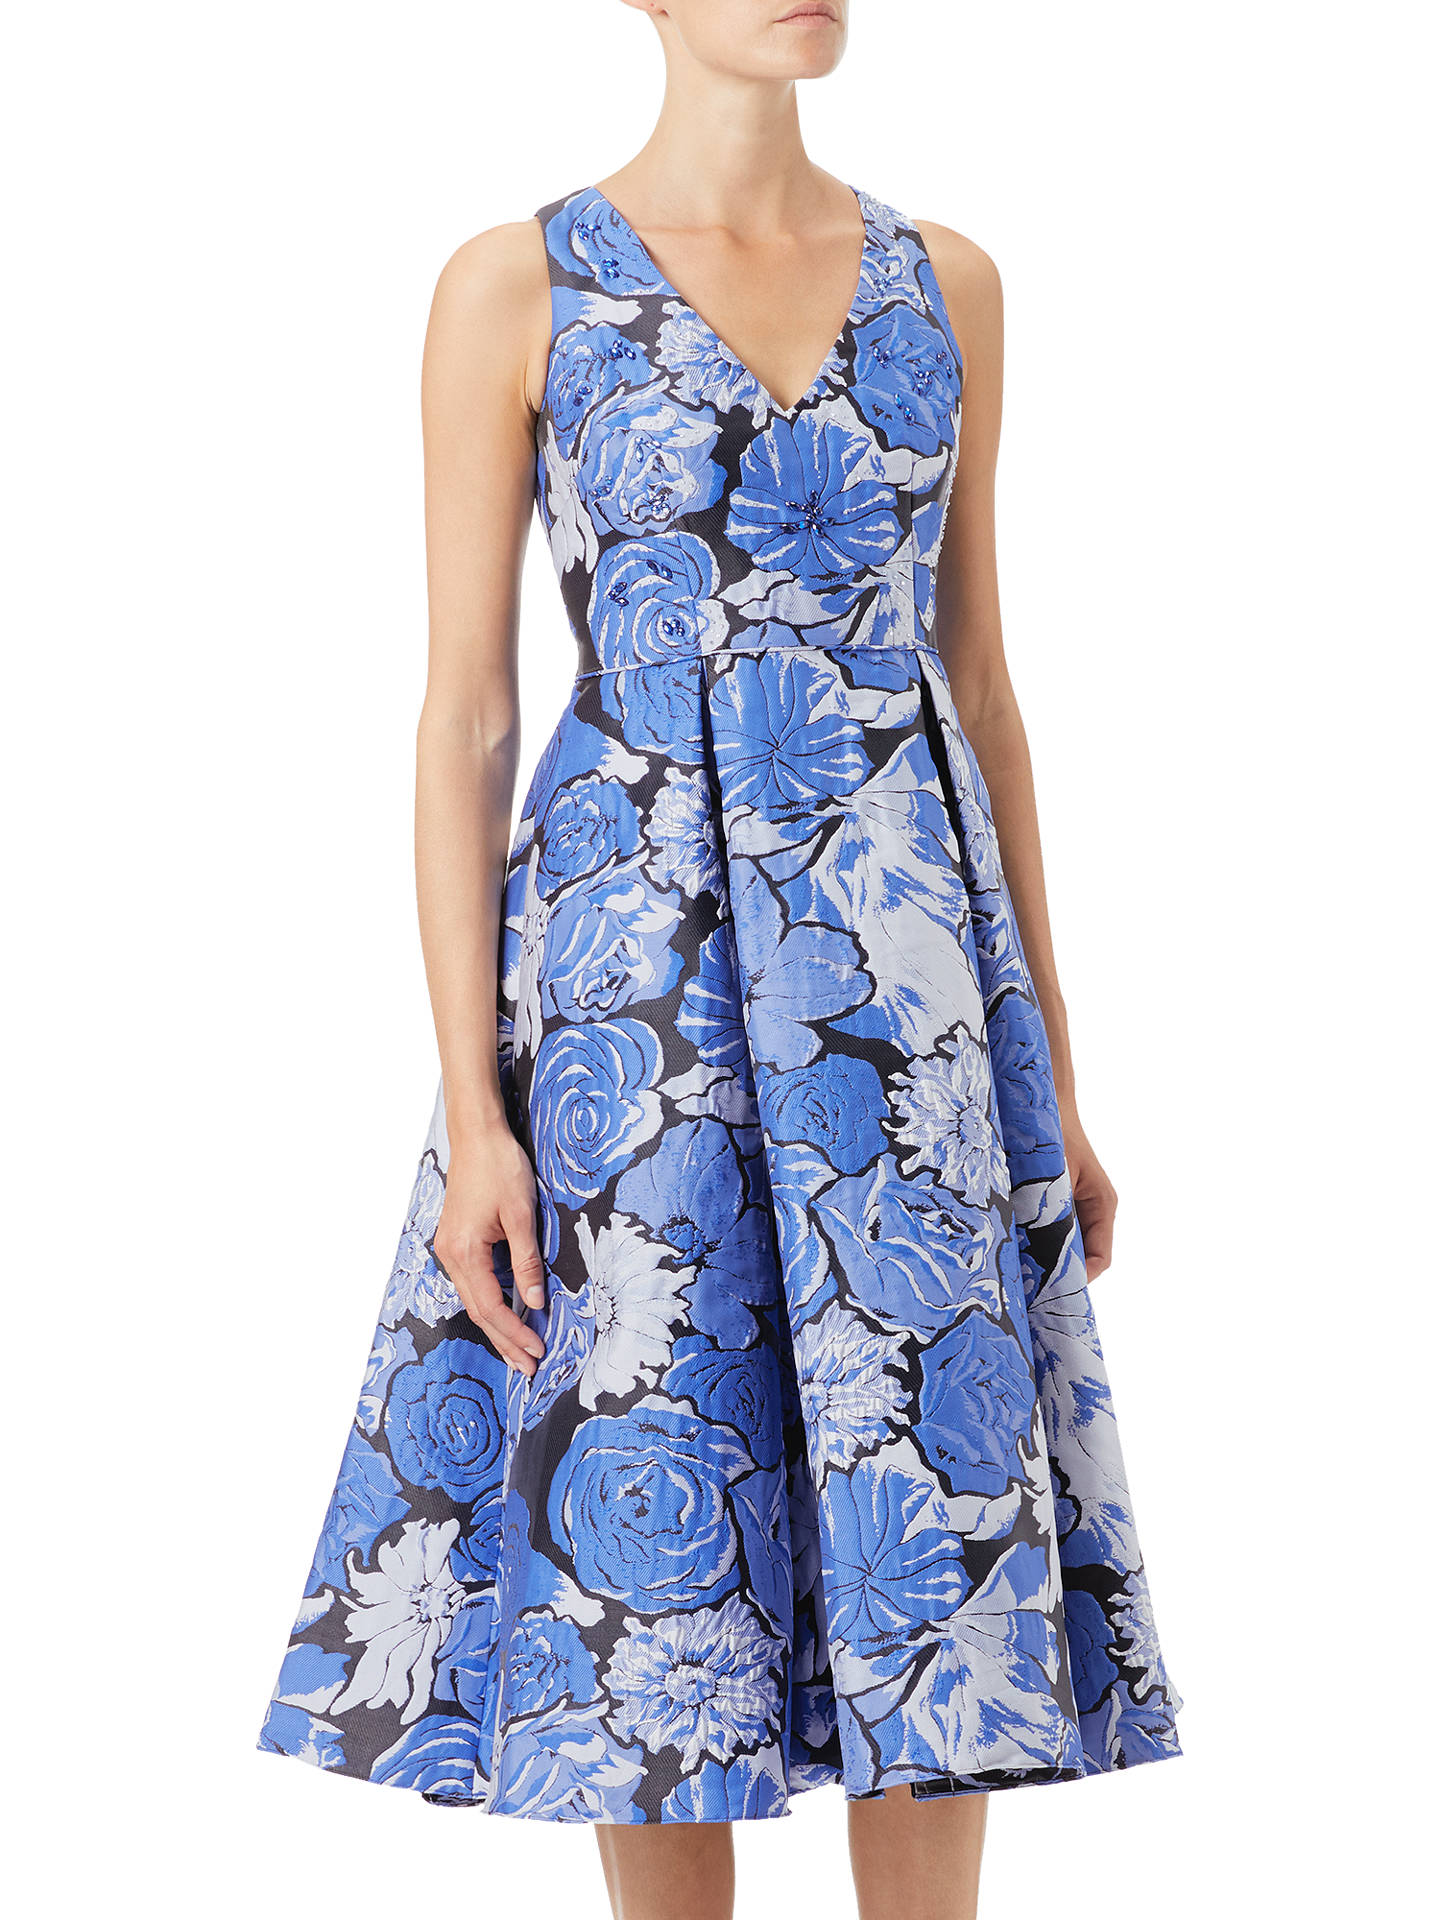 Adrianna Papell Floral Jacquard Fit And Flare Dress Blue